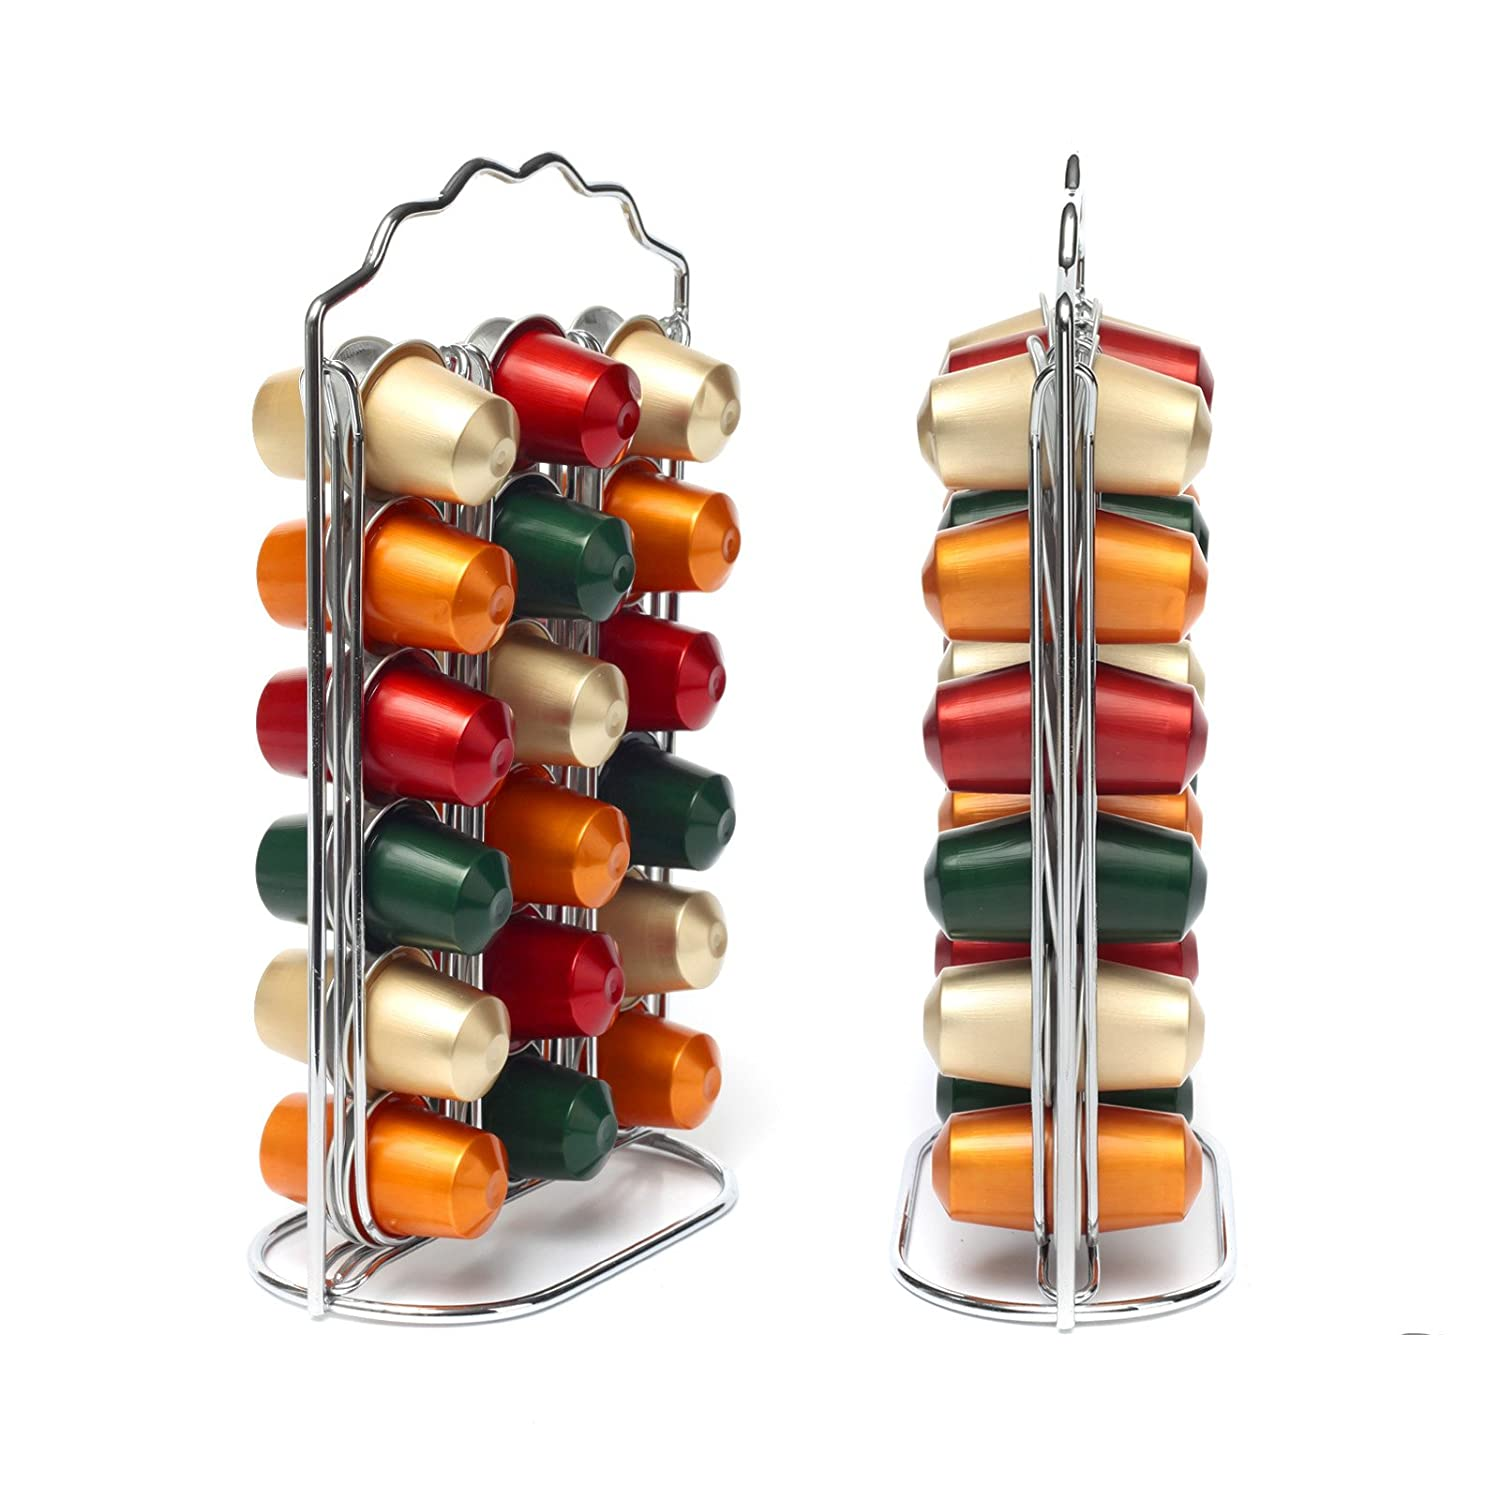 36 chrome coffee capsule pod holder tower stand rack for nespresso ebay. Black Bedroom Furniture Sets. Home Design Ideas